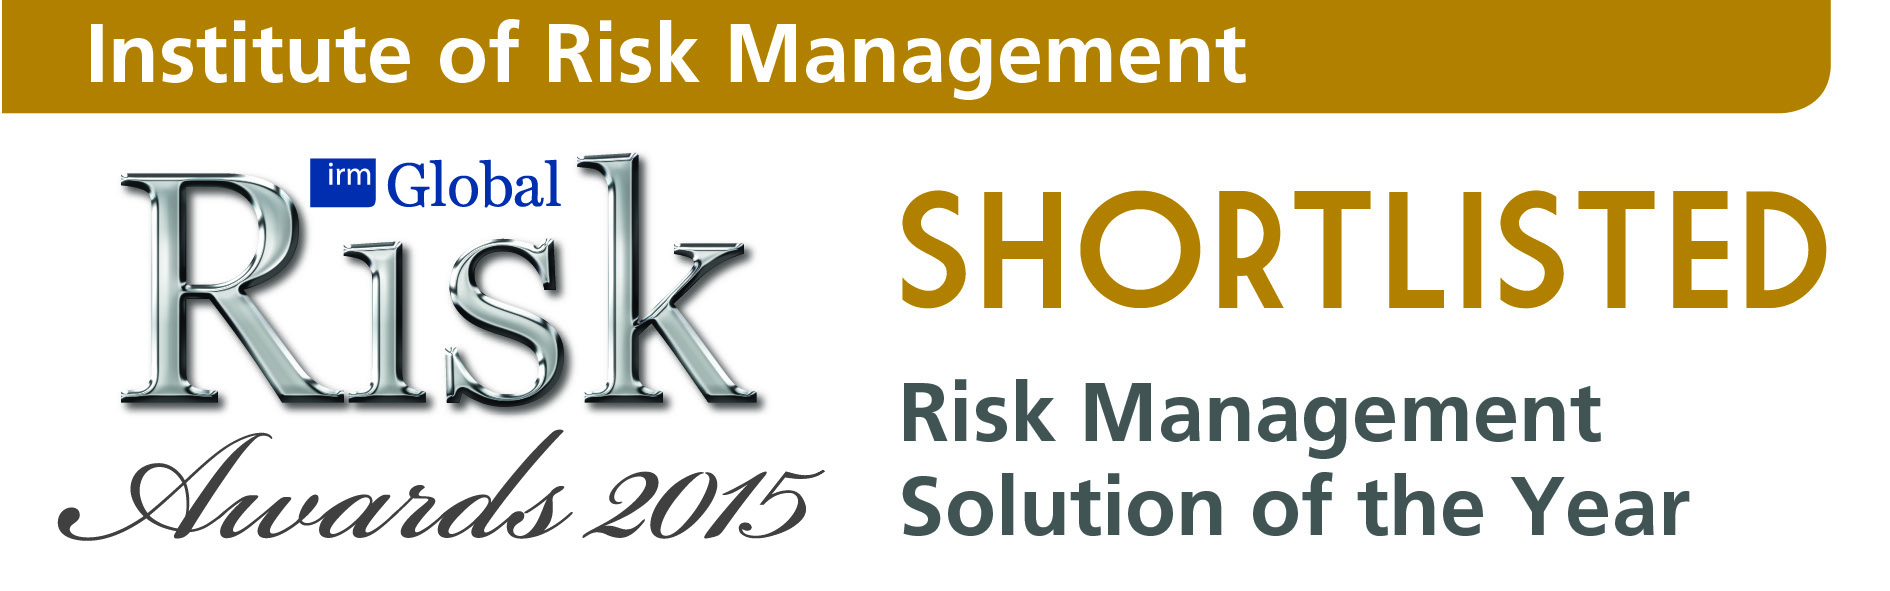 Risk Management Solution of the Year - Institute of Risk Management